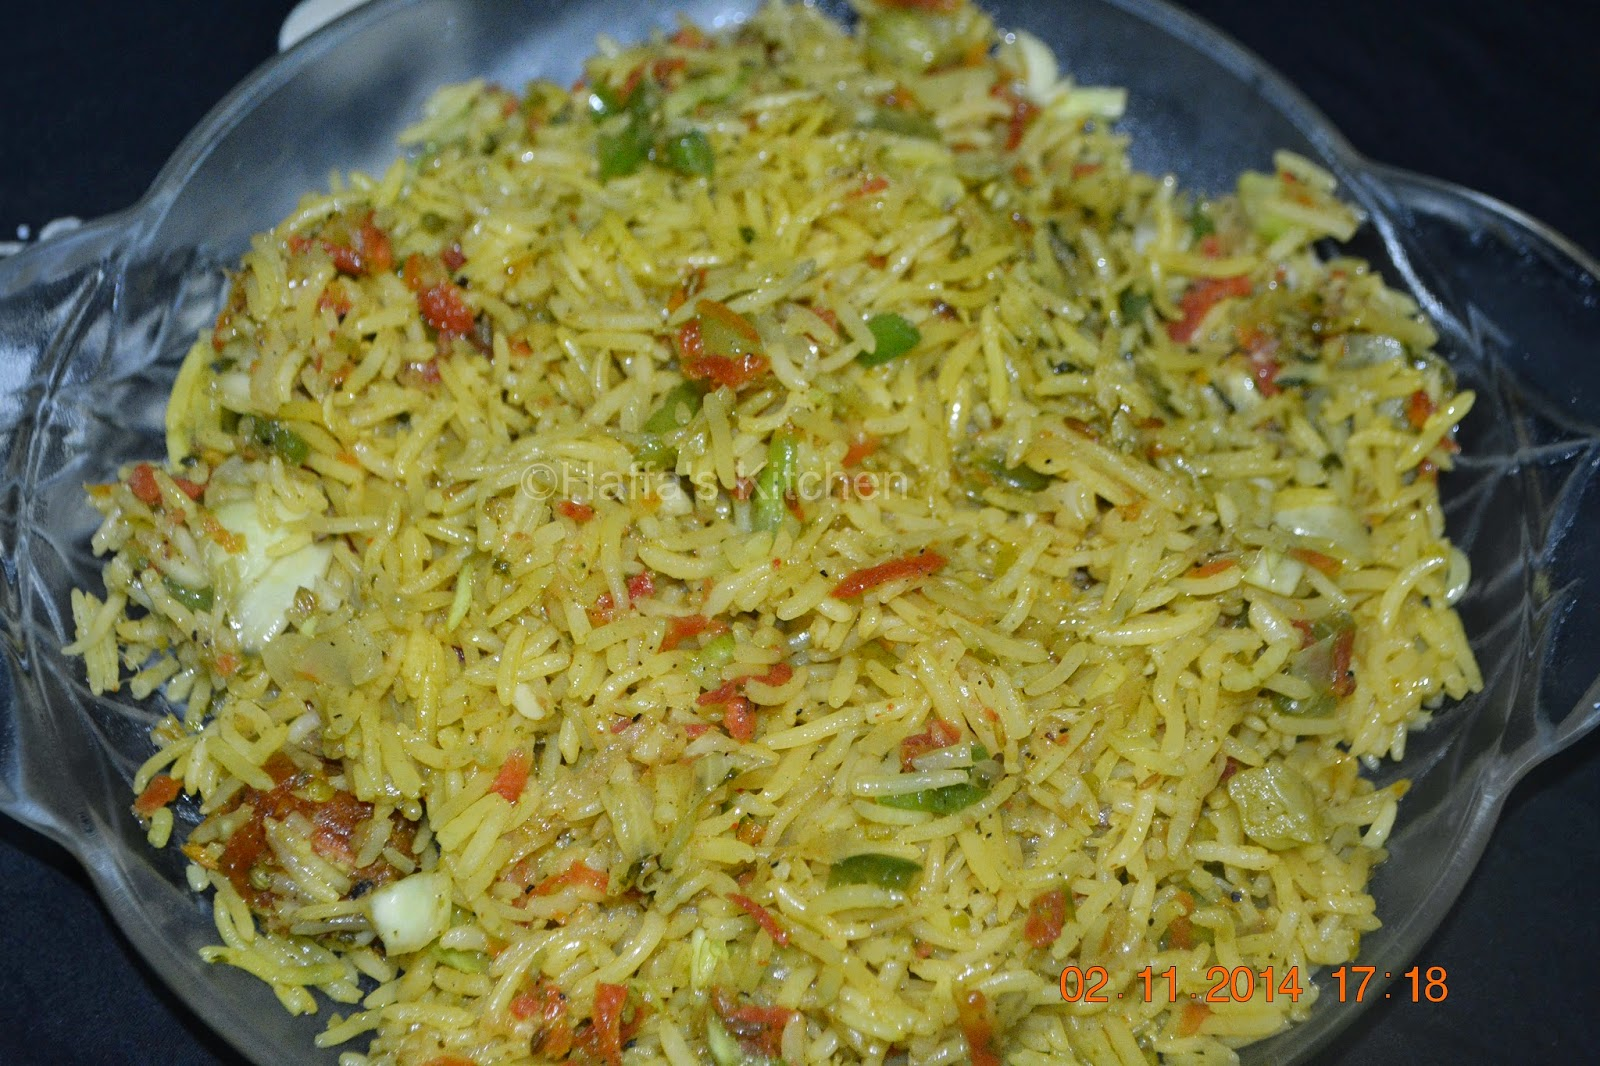 Italian palao, international rice recipes